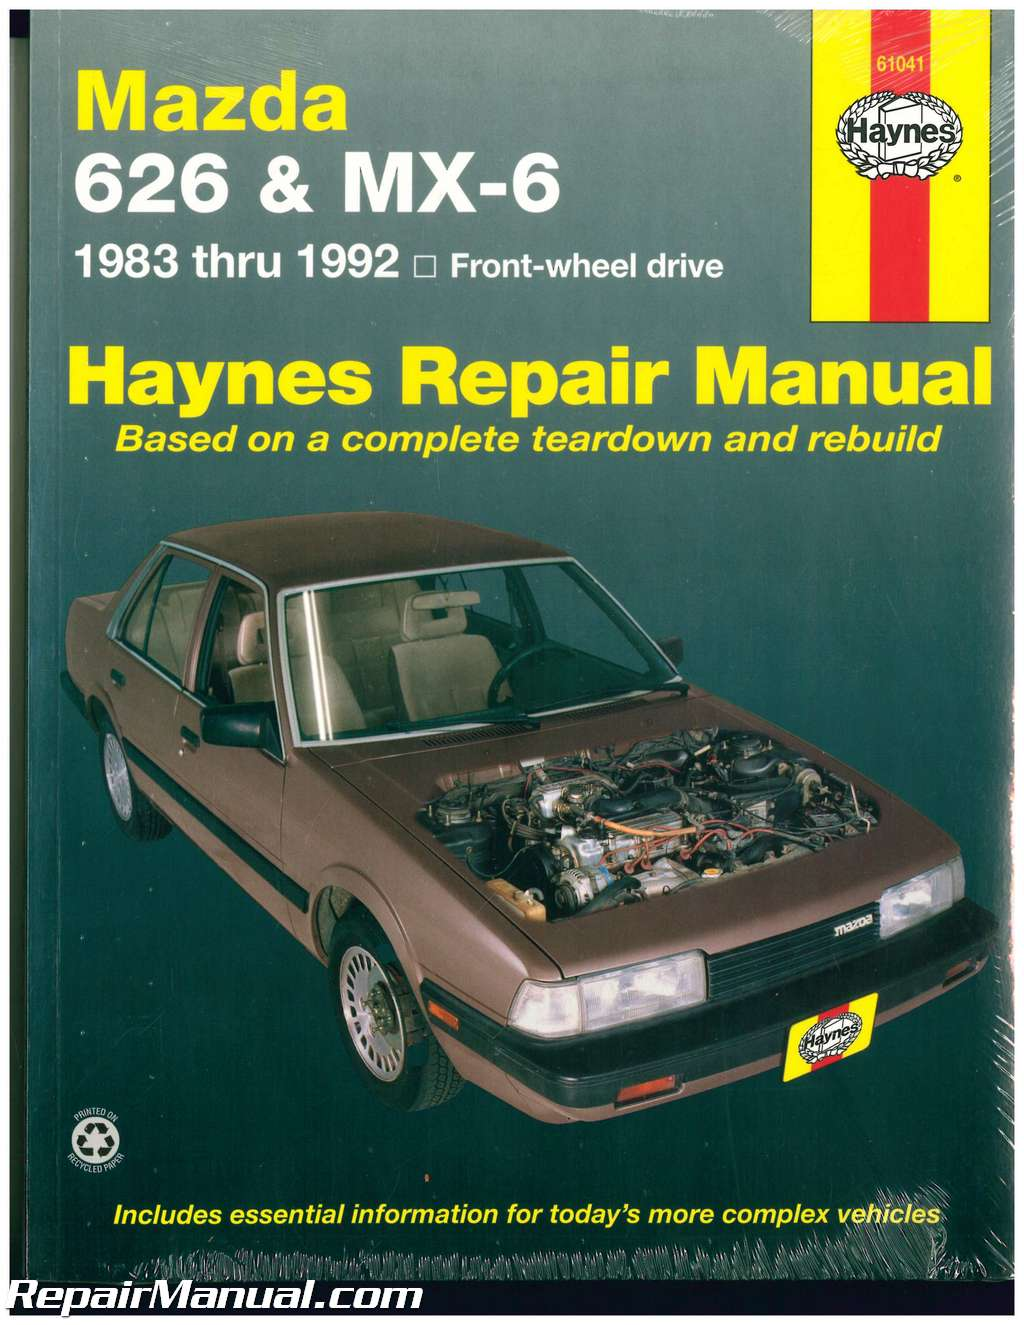 haynes mazda 626 mx 6 1983 1992 auto repair manual rh repairmanual com mazda  6 owners manual 2016 mazda 6 owners manual 2009